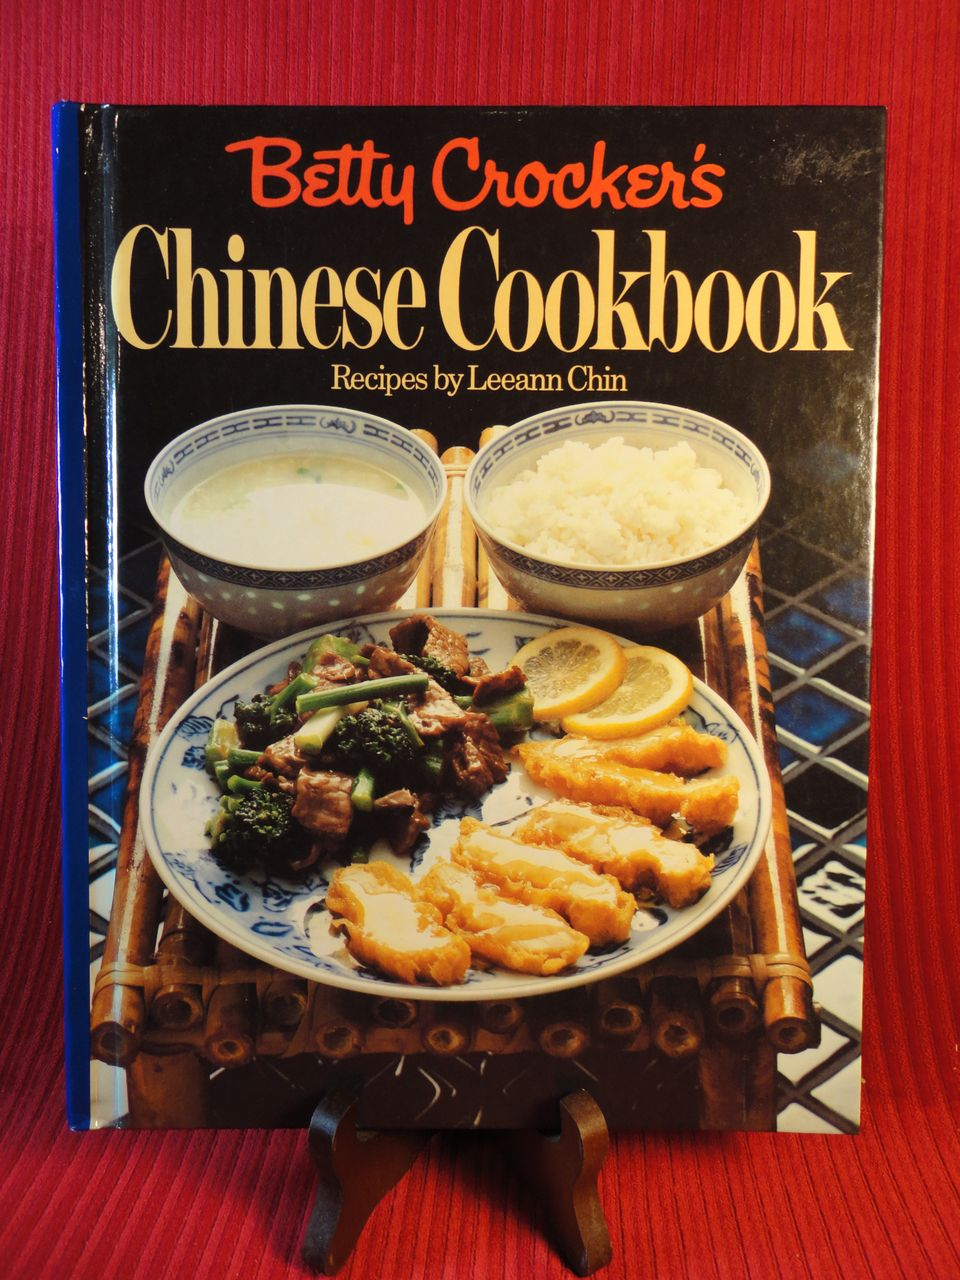 &quot;Betty Crocker's Chinese Cookbook&quot; by Leeann Chin, 1981, 1st Ed.